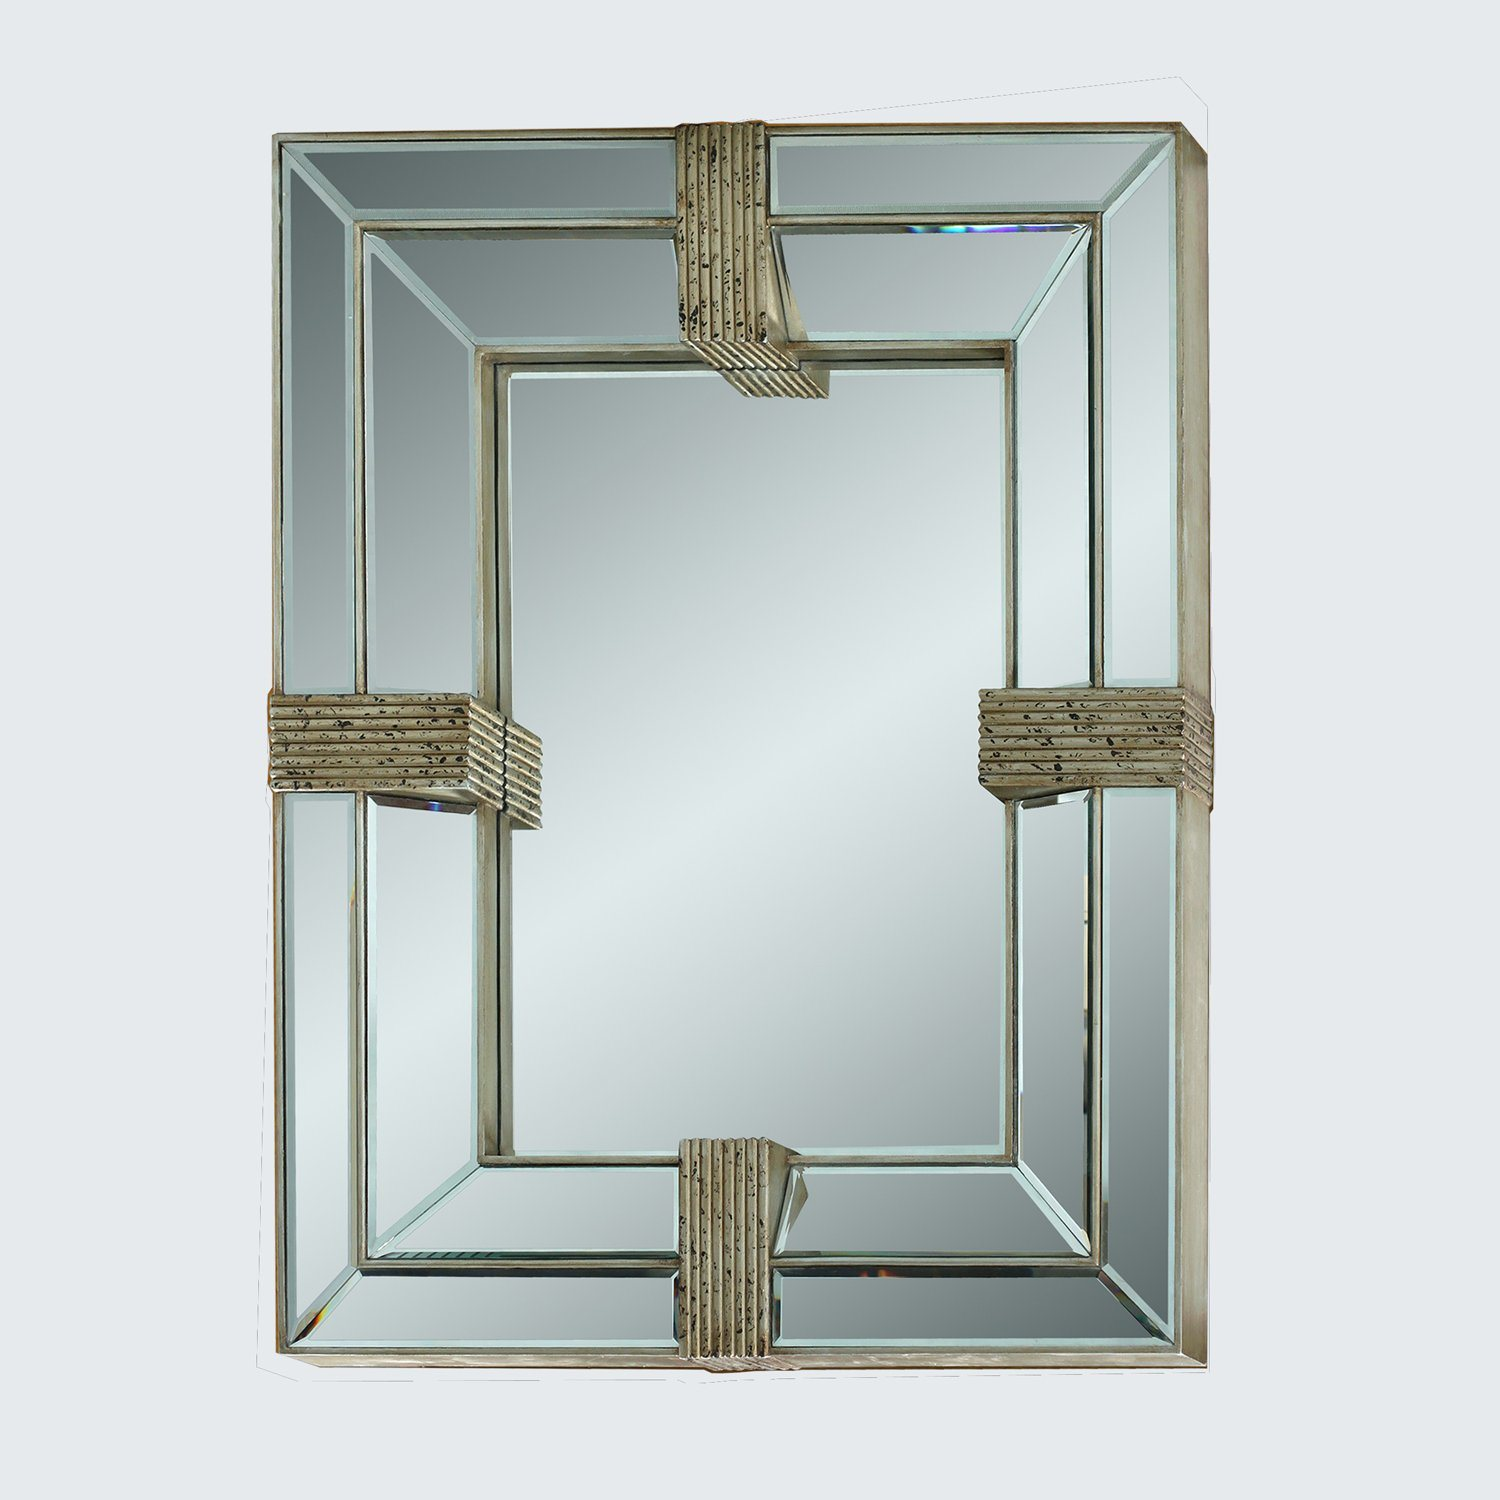 Wooden Big Size Wall Mirror Hotel Decoration